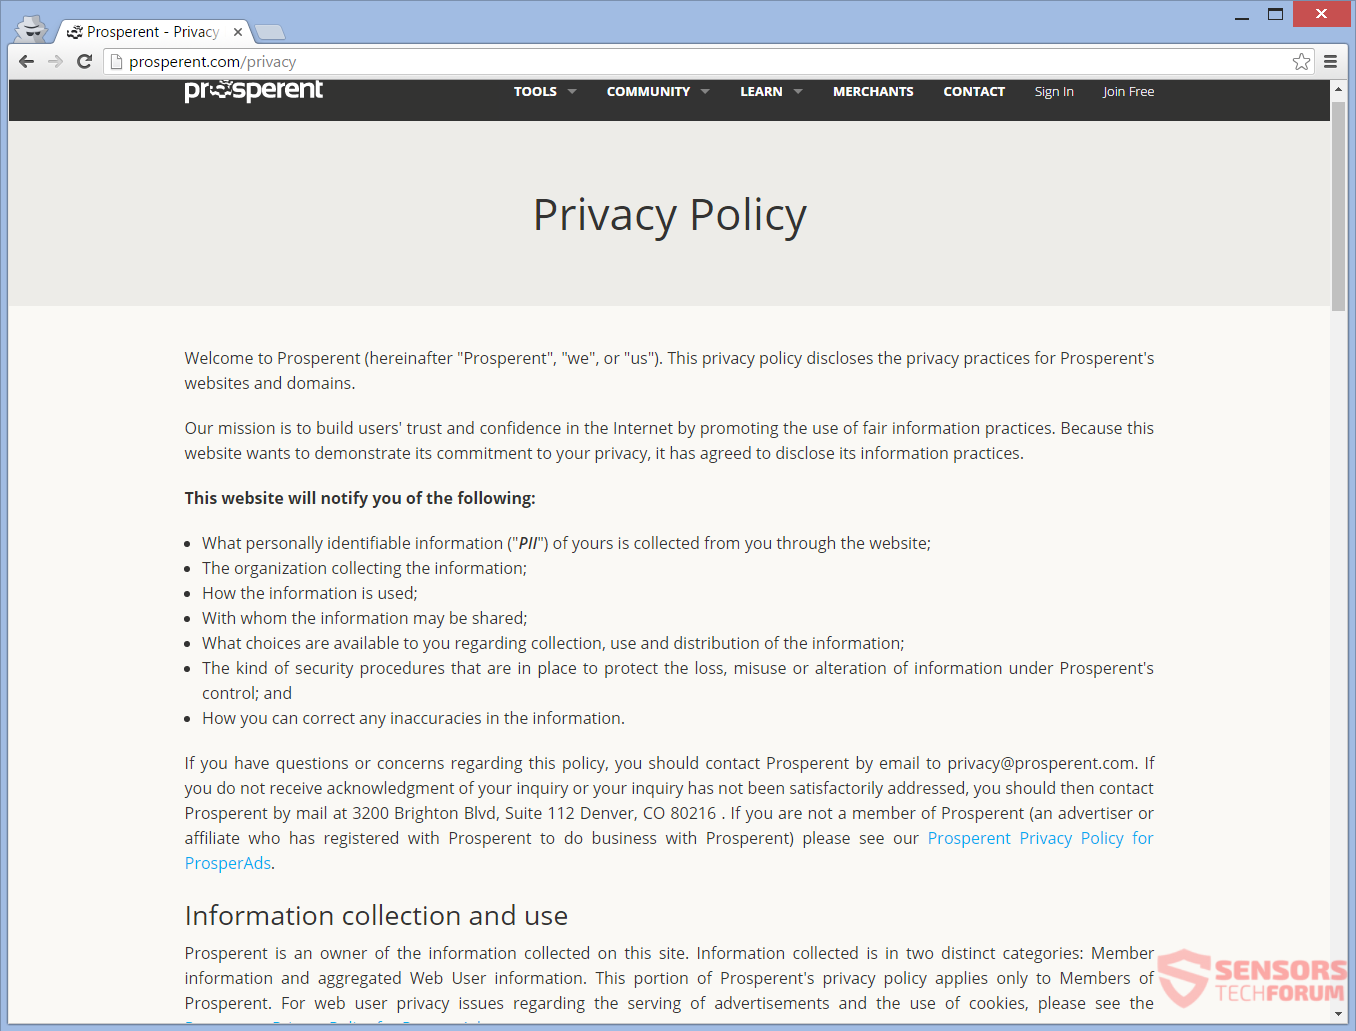 STF-prosperent-com-privacy-policy